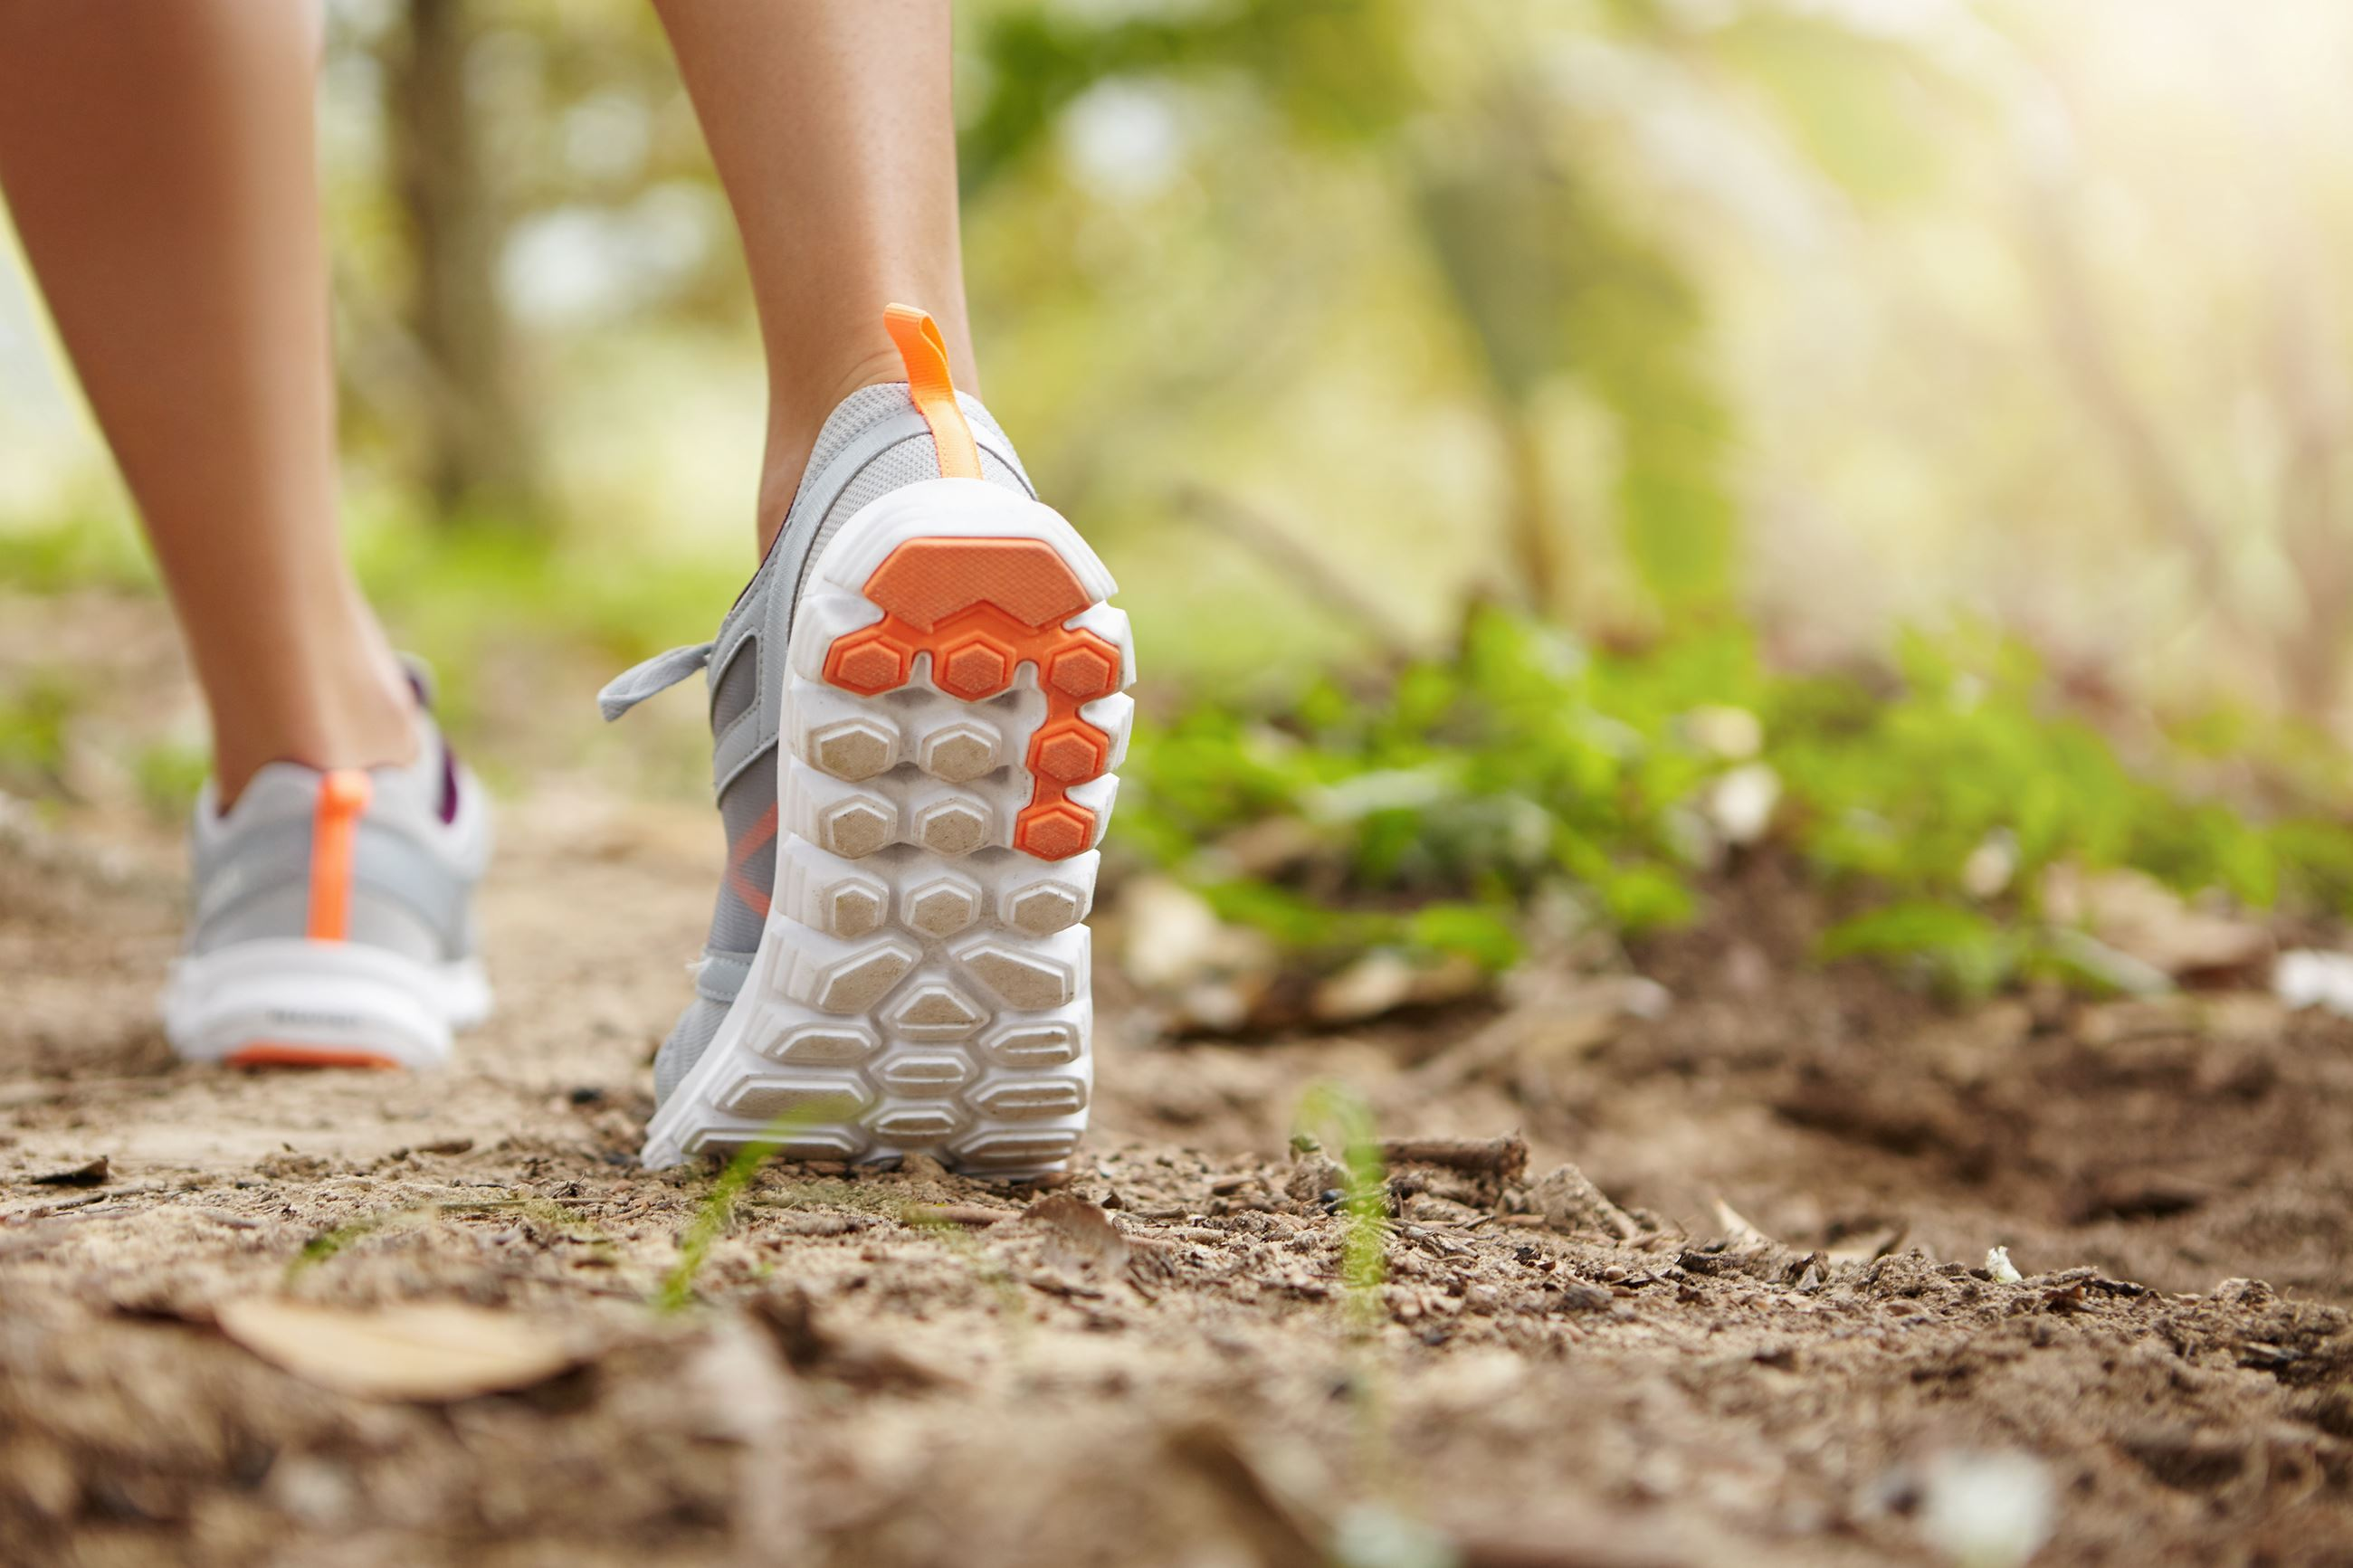 sports-fitness-nature-healthy-lifestyle-concept-young-female-runner-wearing-sneakers-running-shoes-w